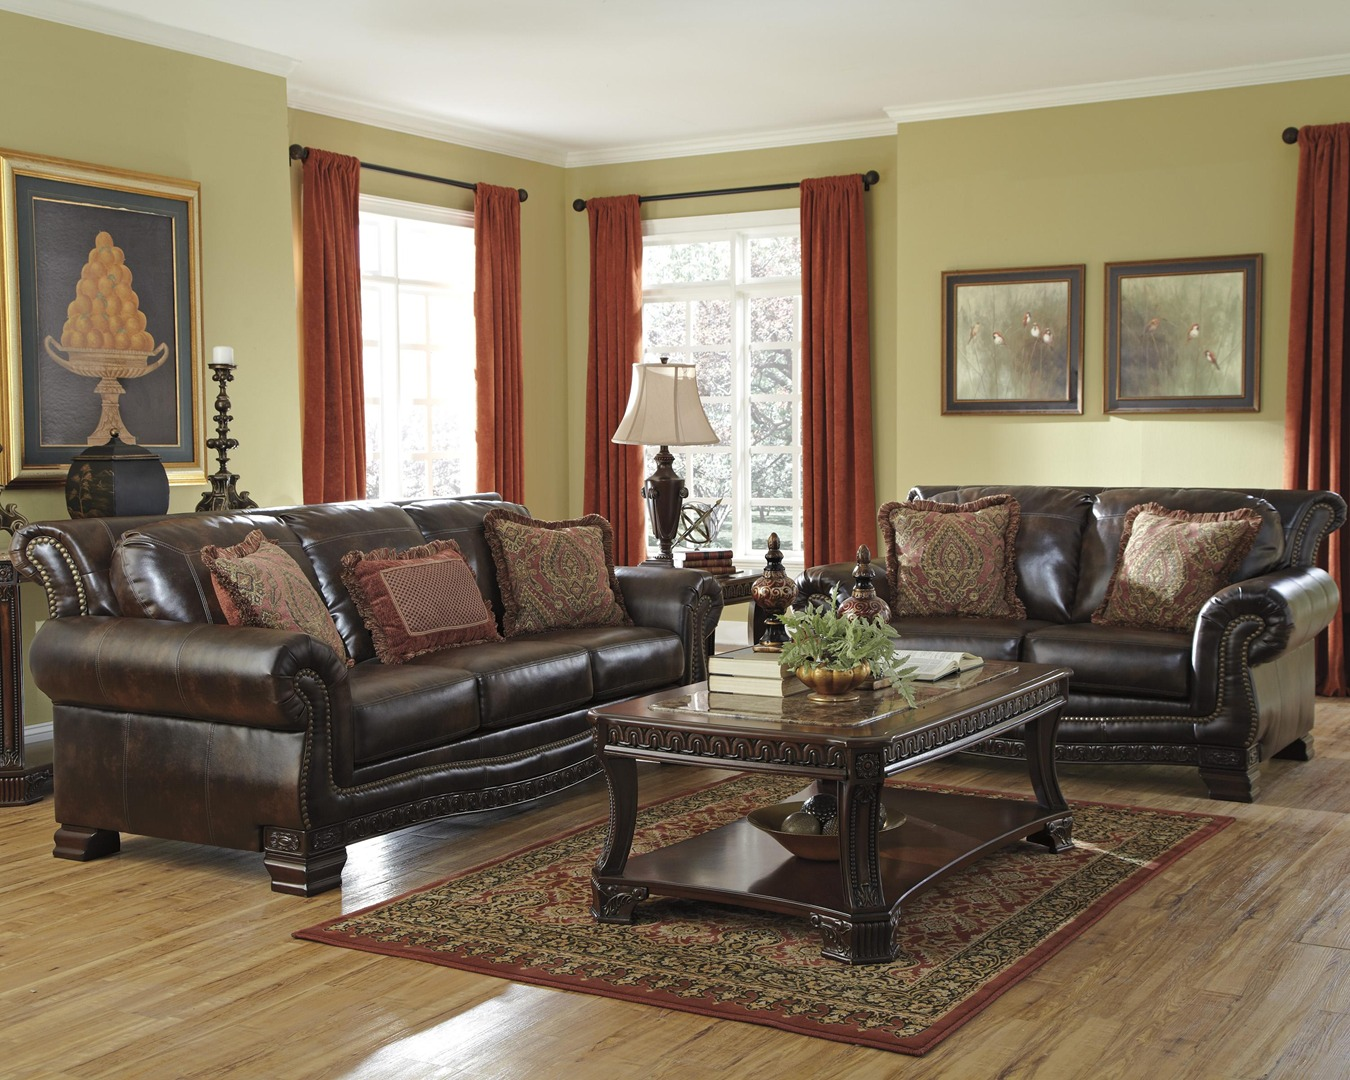 Lowest Price On New And Used Furniture Since 1972 Shop J K Furniture